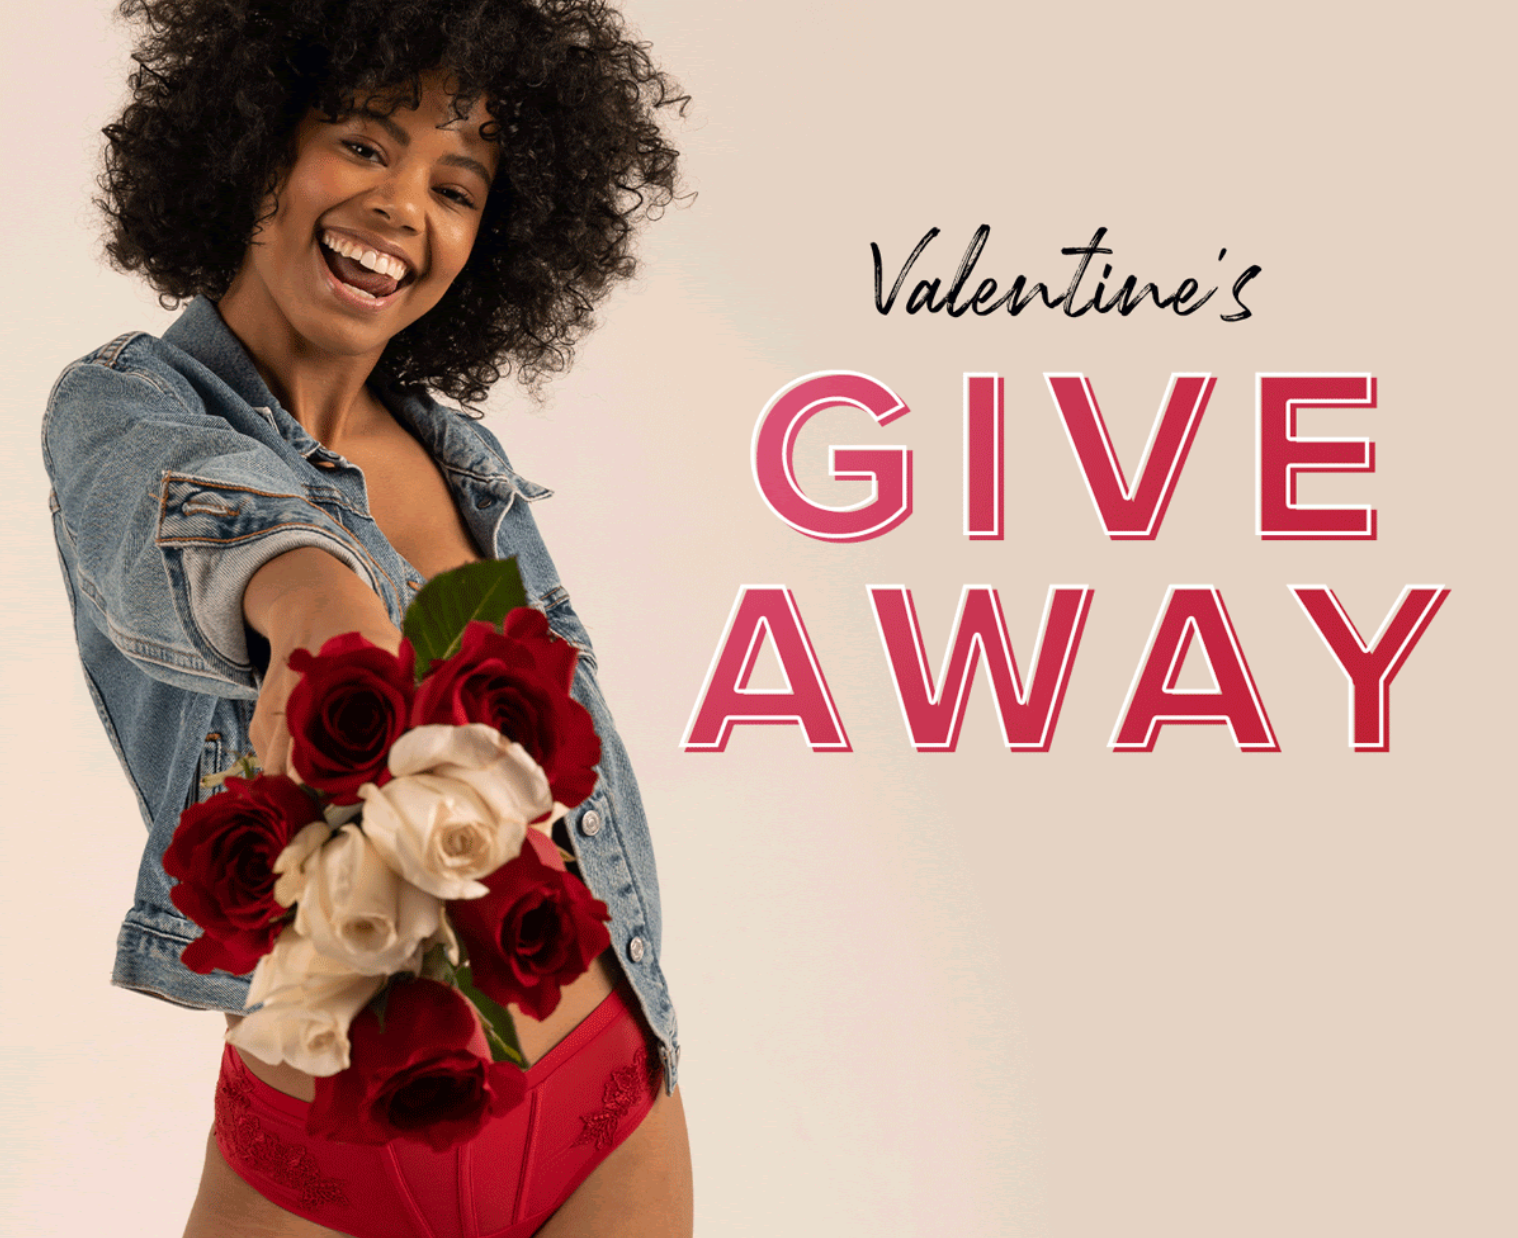 A Pretty Sweet Valentine's Day Giveaway